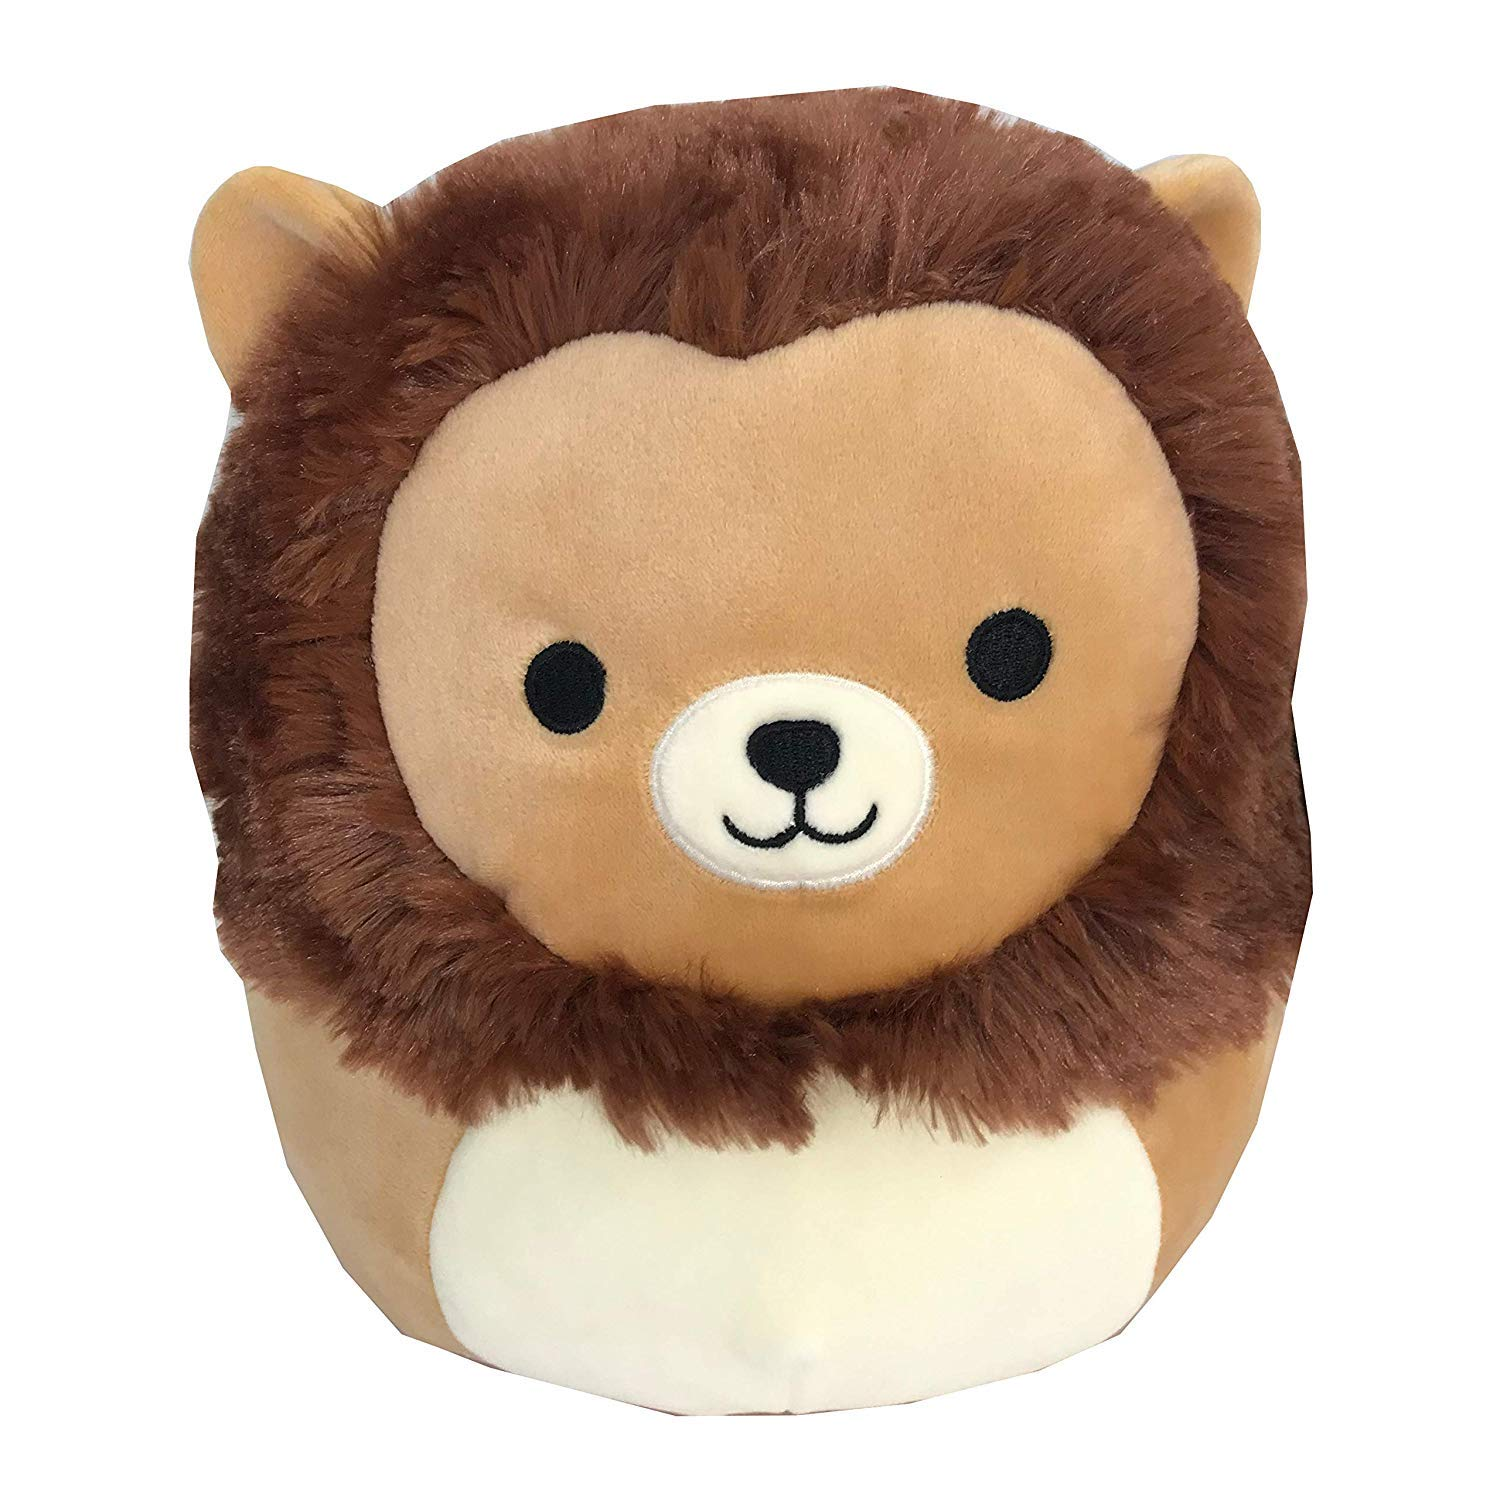 Squishmallow Original Kellytoy Brown Lion 16'' Stuffed Animal Pet Pillow Easter Holiday Birthday Gift